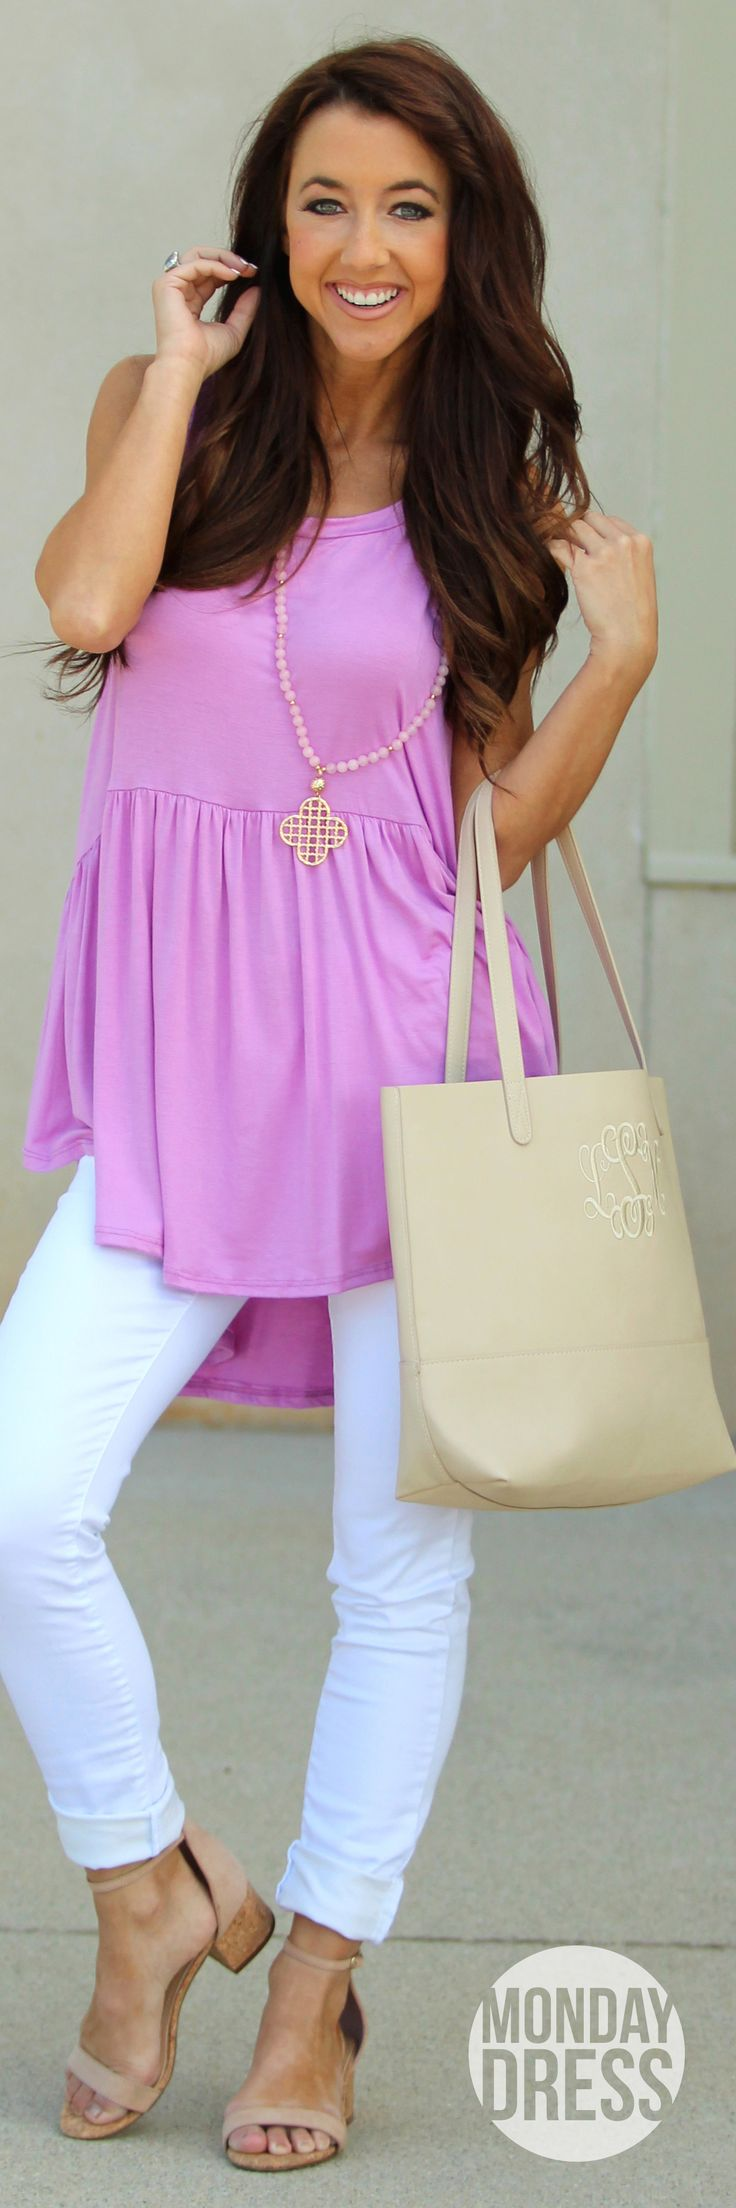 Sunkissed Summer Top | Monday Dress Boutique